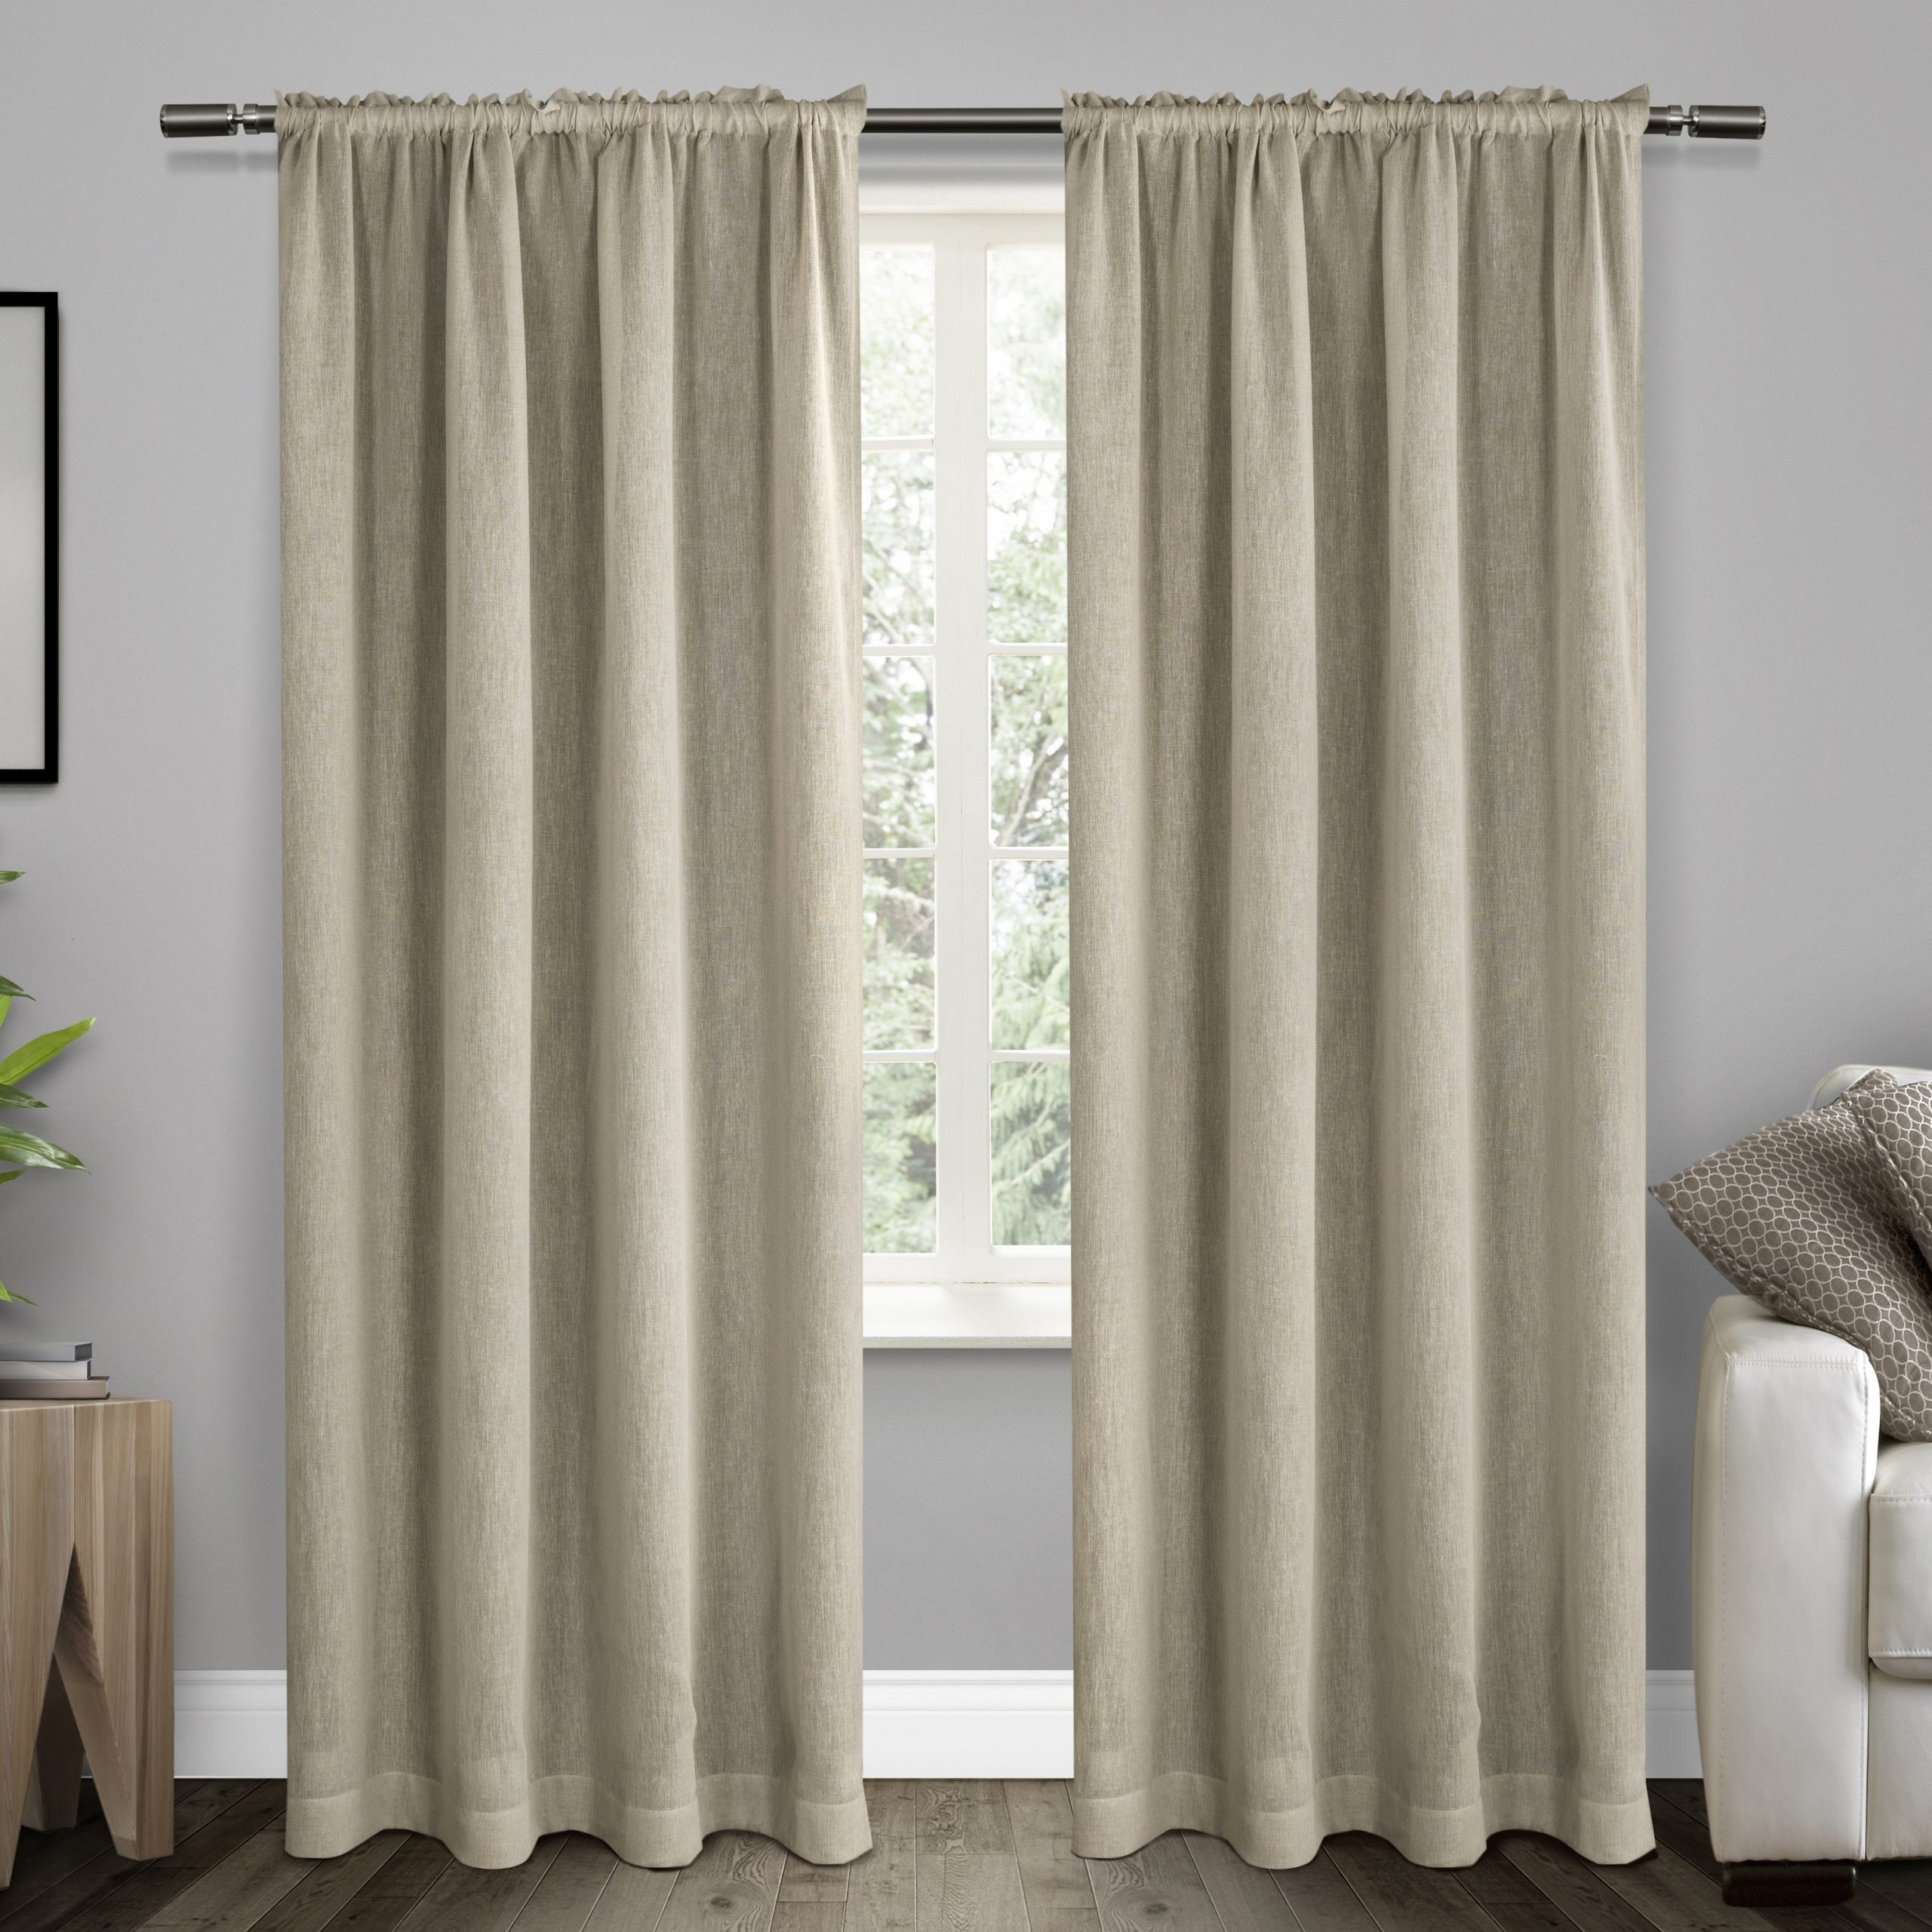 Belgian Sheer Window Curtain Panel Pairs With Rod Pocket Throughout Best And Newest Ati Home Belgian Sheer Window Curtain Panel Pair With Rod Pocket (View 2 of 20)